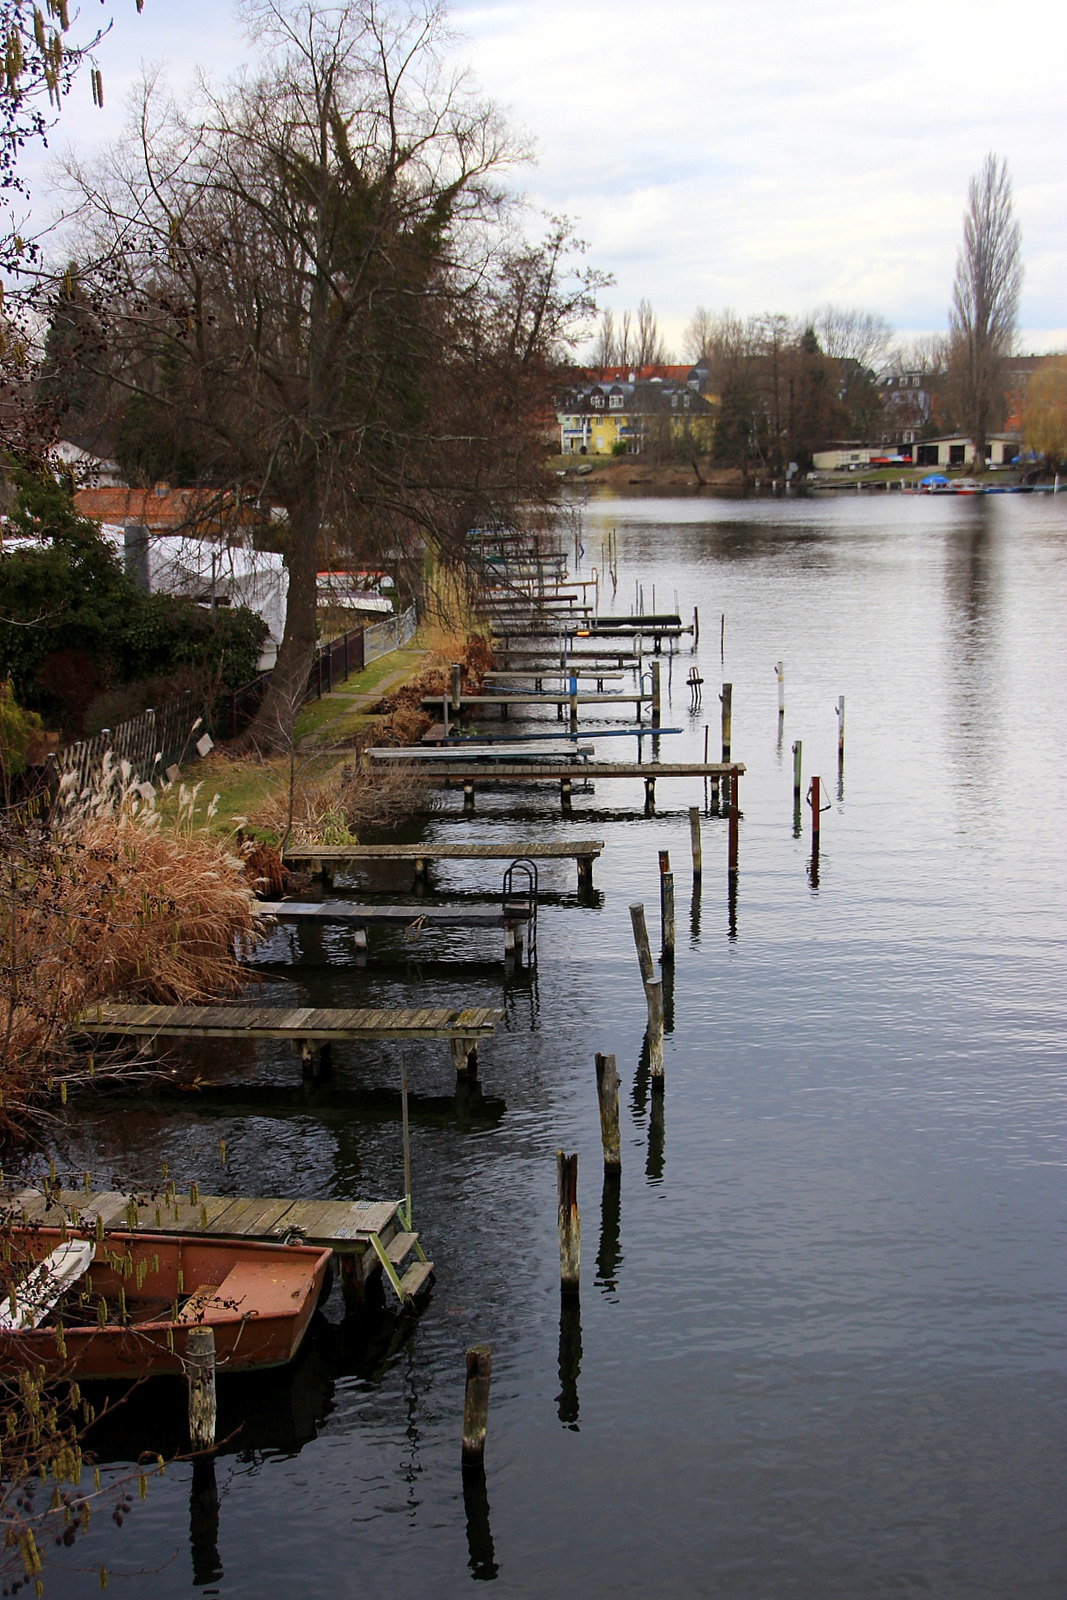 Day Trip to Köpenick